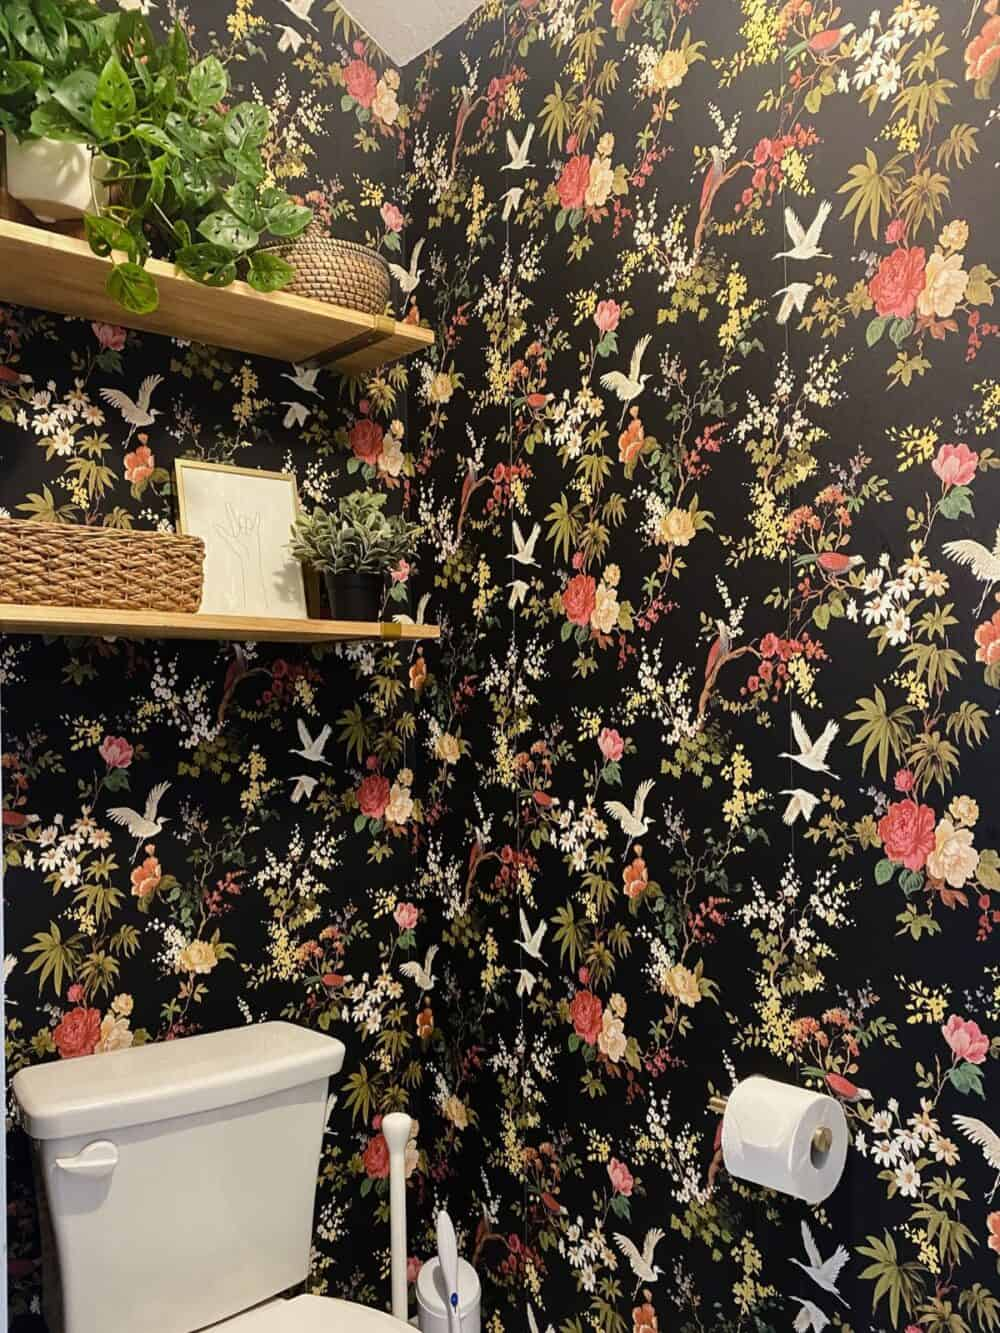 a small water closet with black floral wallpaper